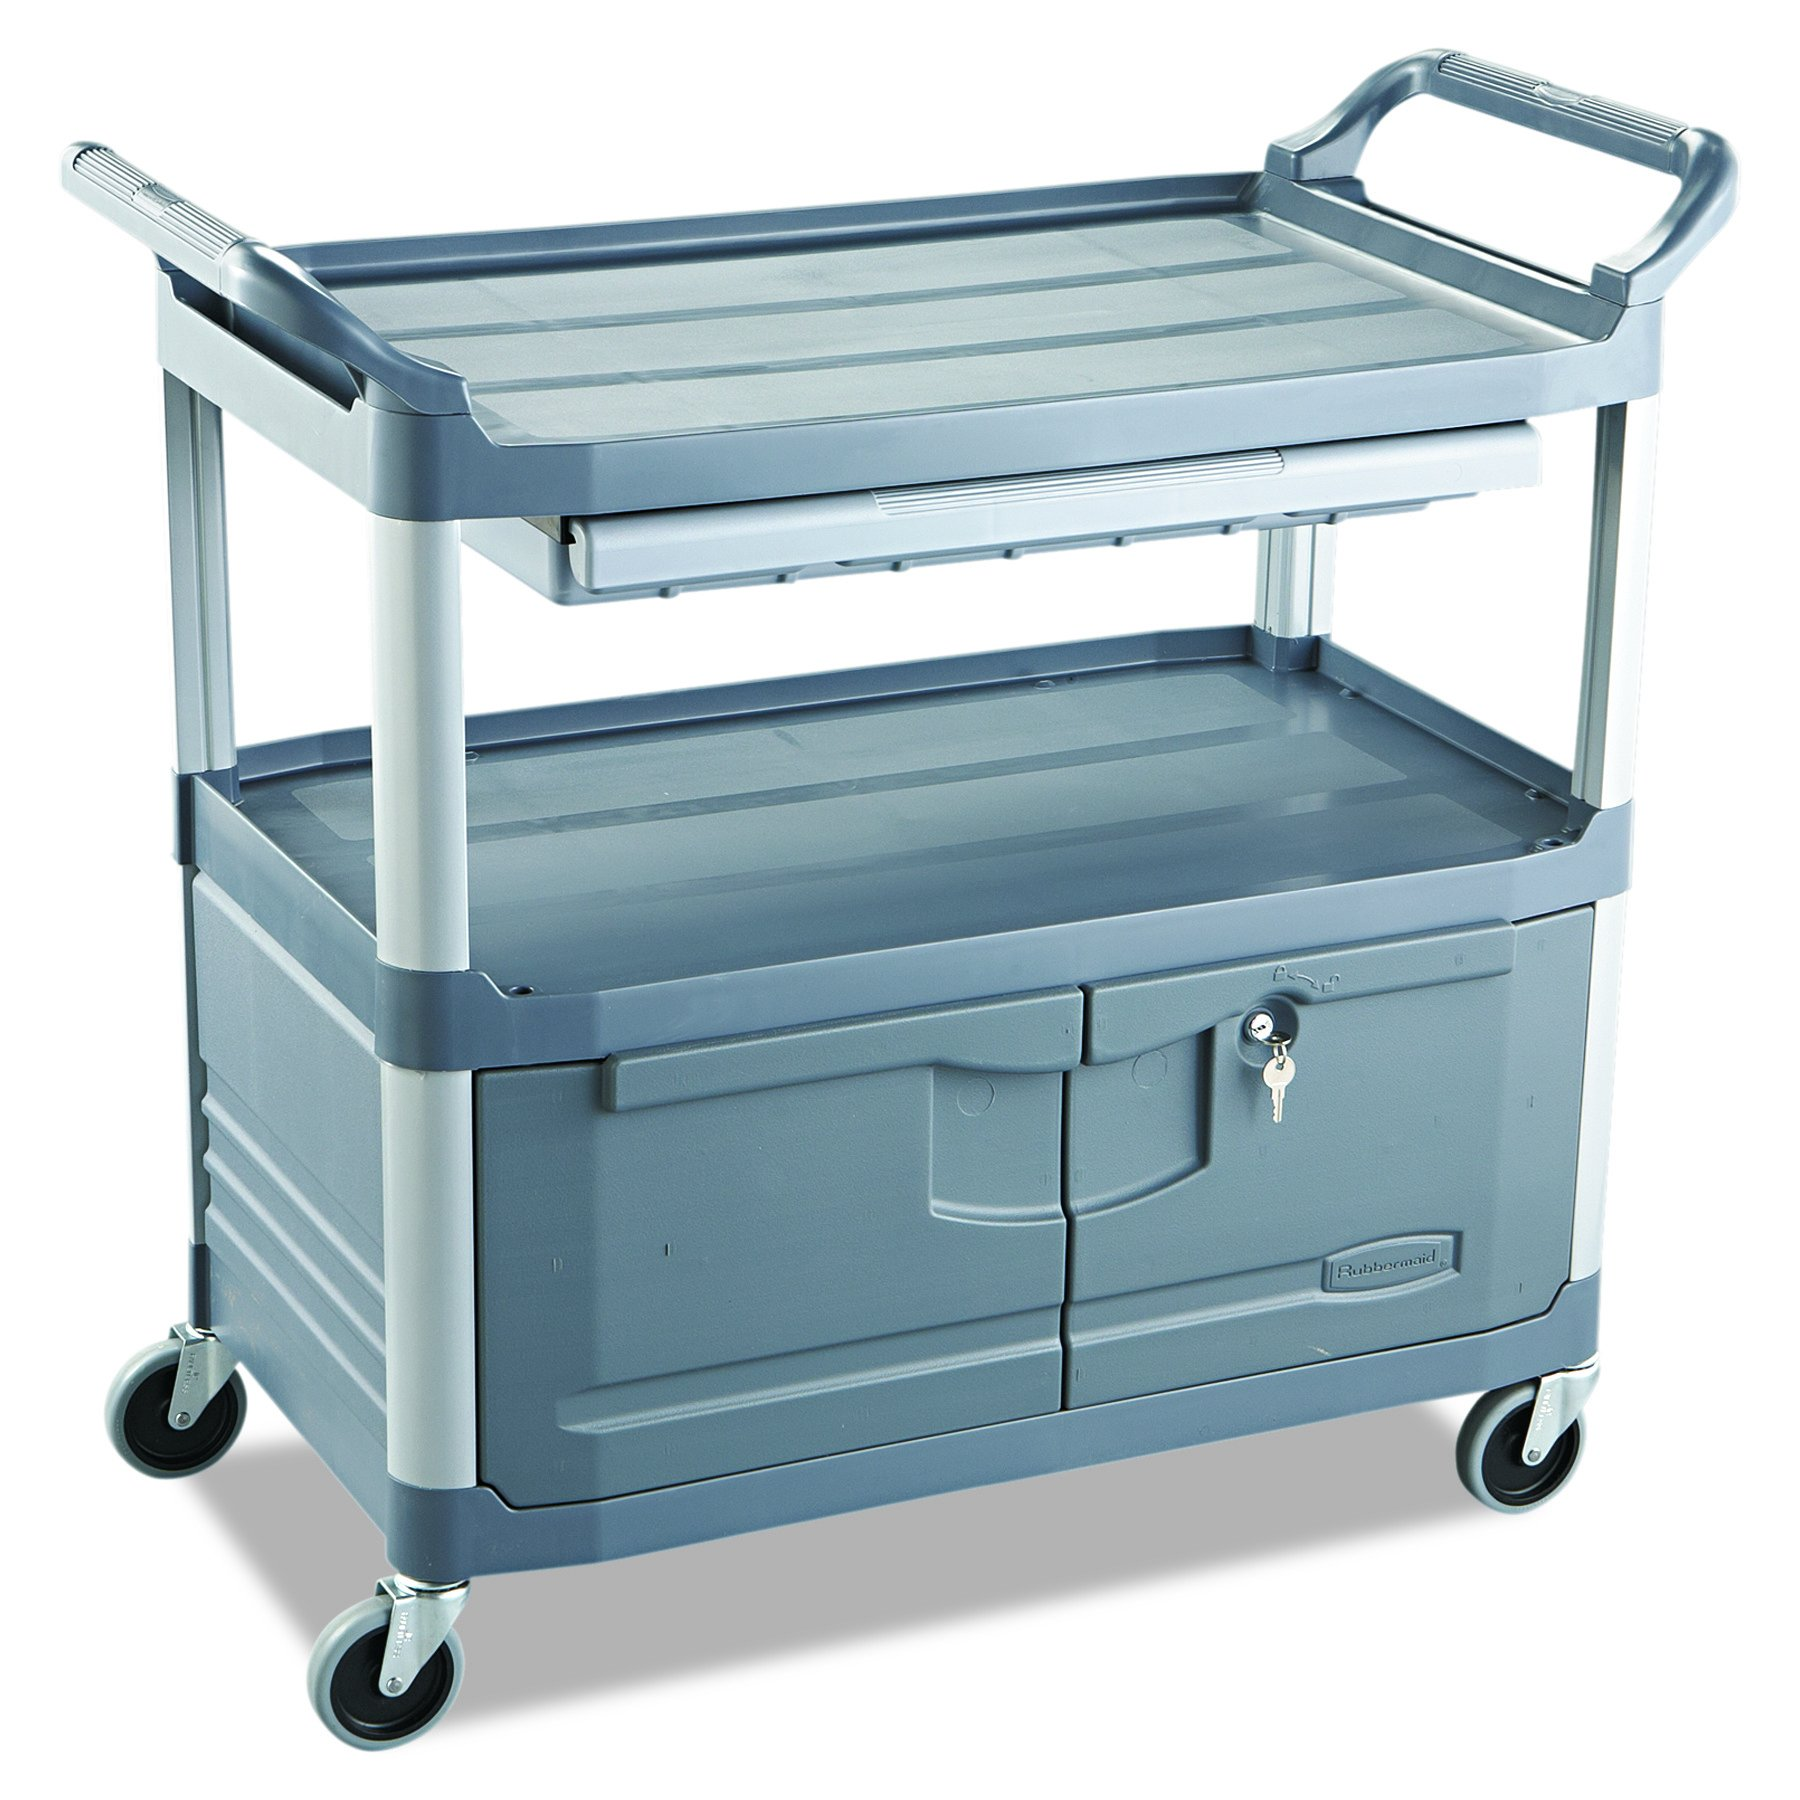 Rubbermaid Commercial Xtra Instrument and Utility Cart, Gray, FG409400GRAY